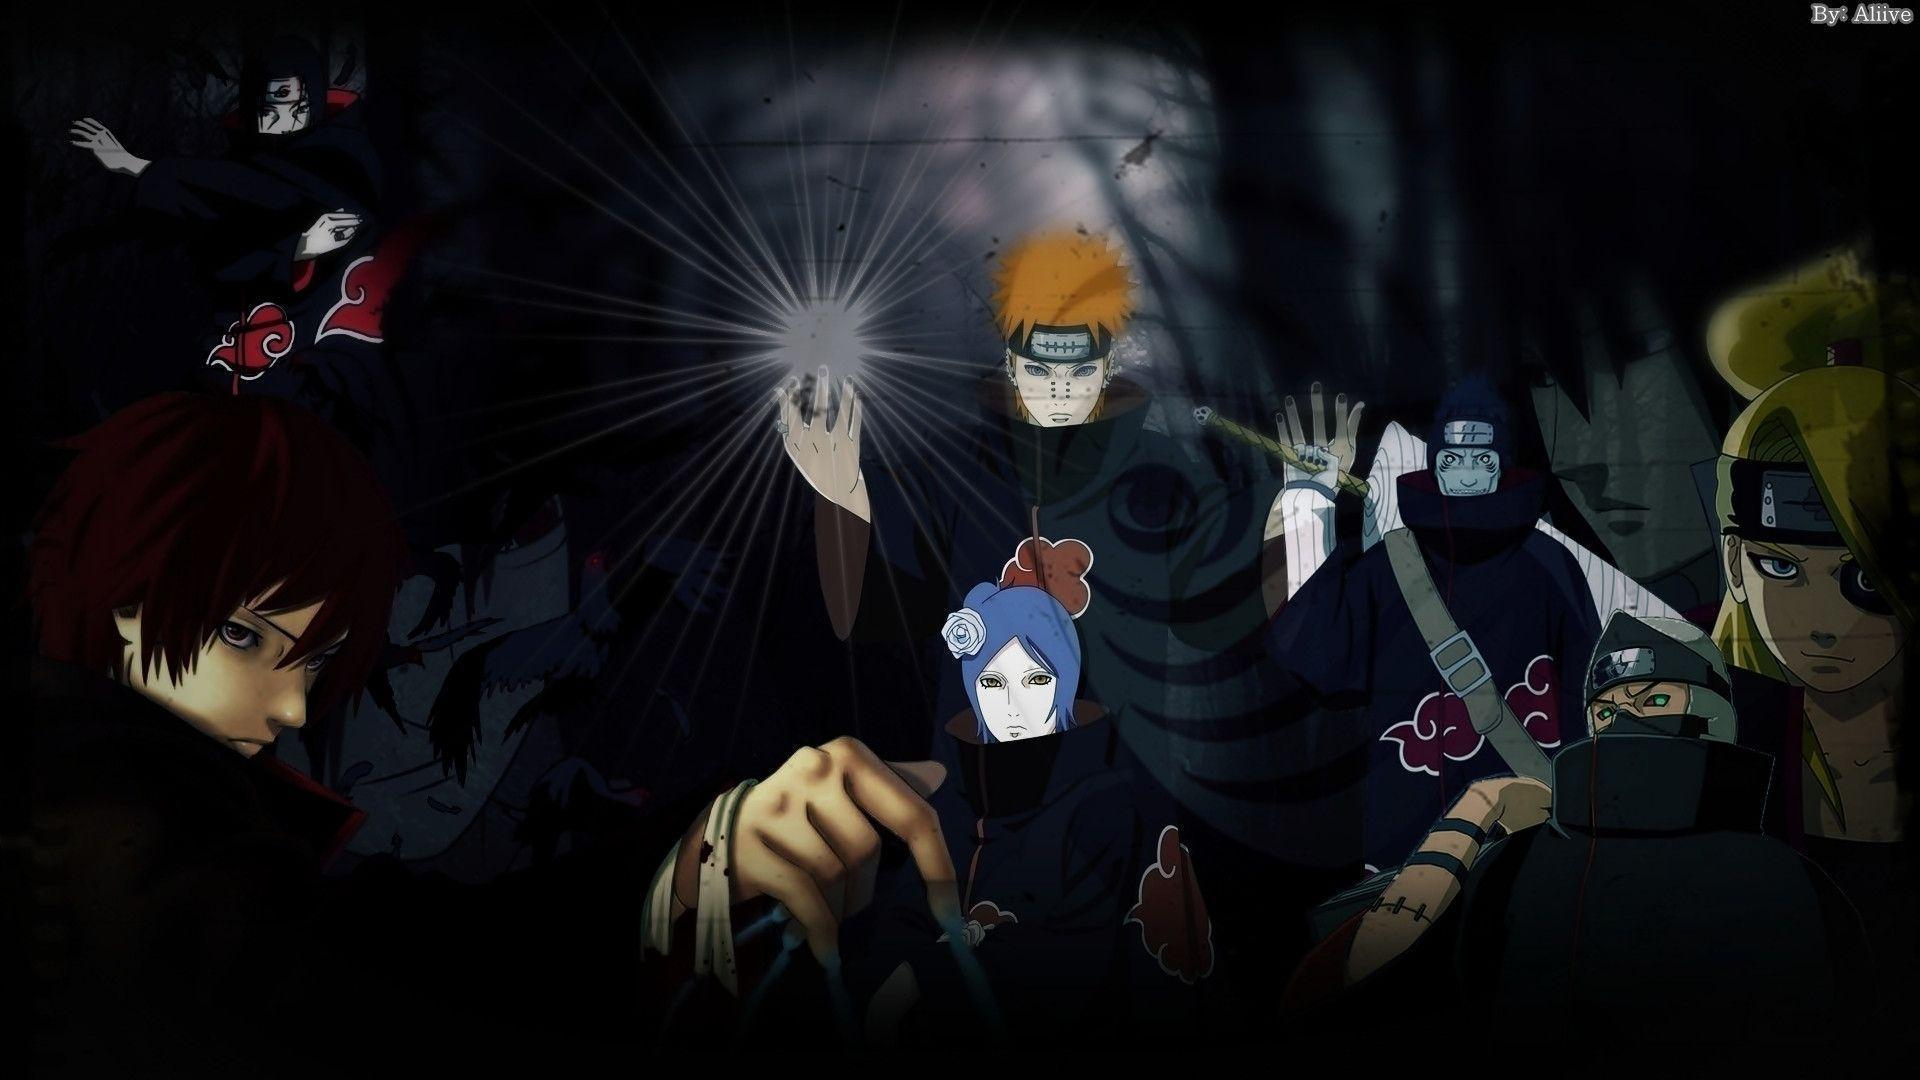 Akatsuki Wallpapers Hd Wallpaper Cave